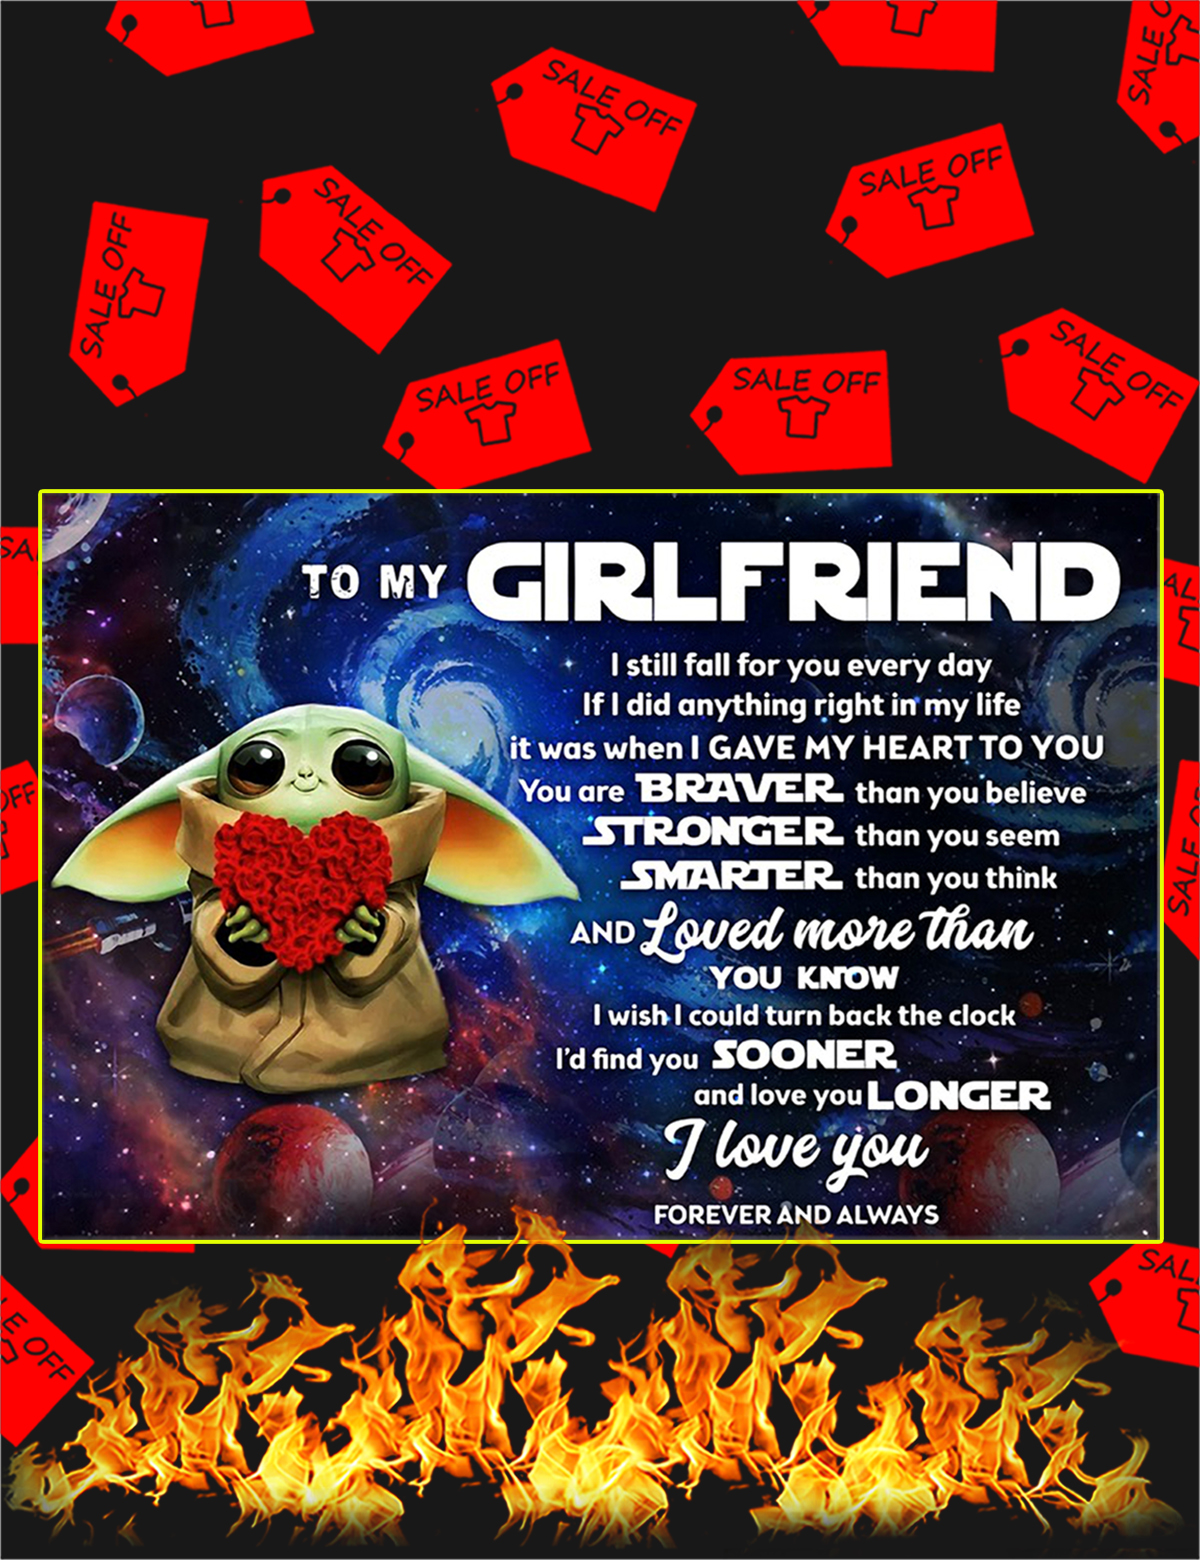 Baby yoda to my girlfriend poster - A1